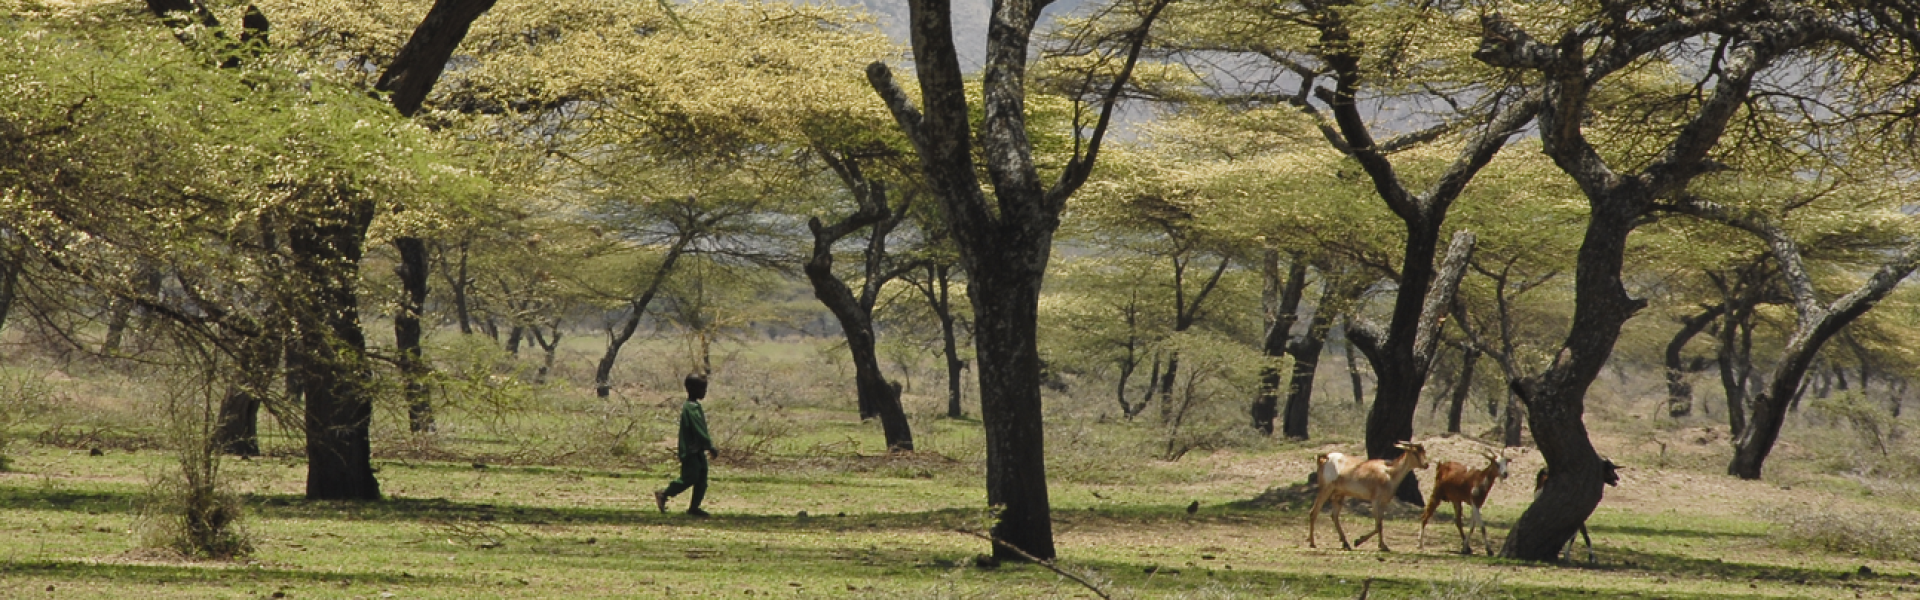 Acacia forest in Ethiopia.